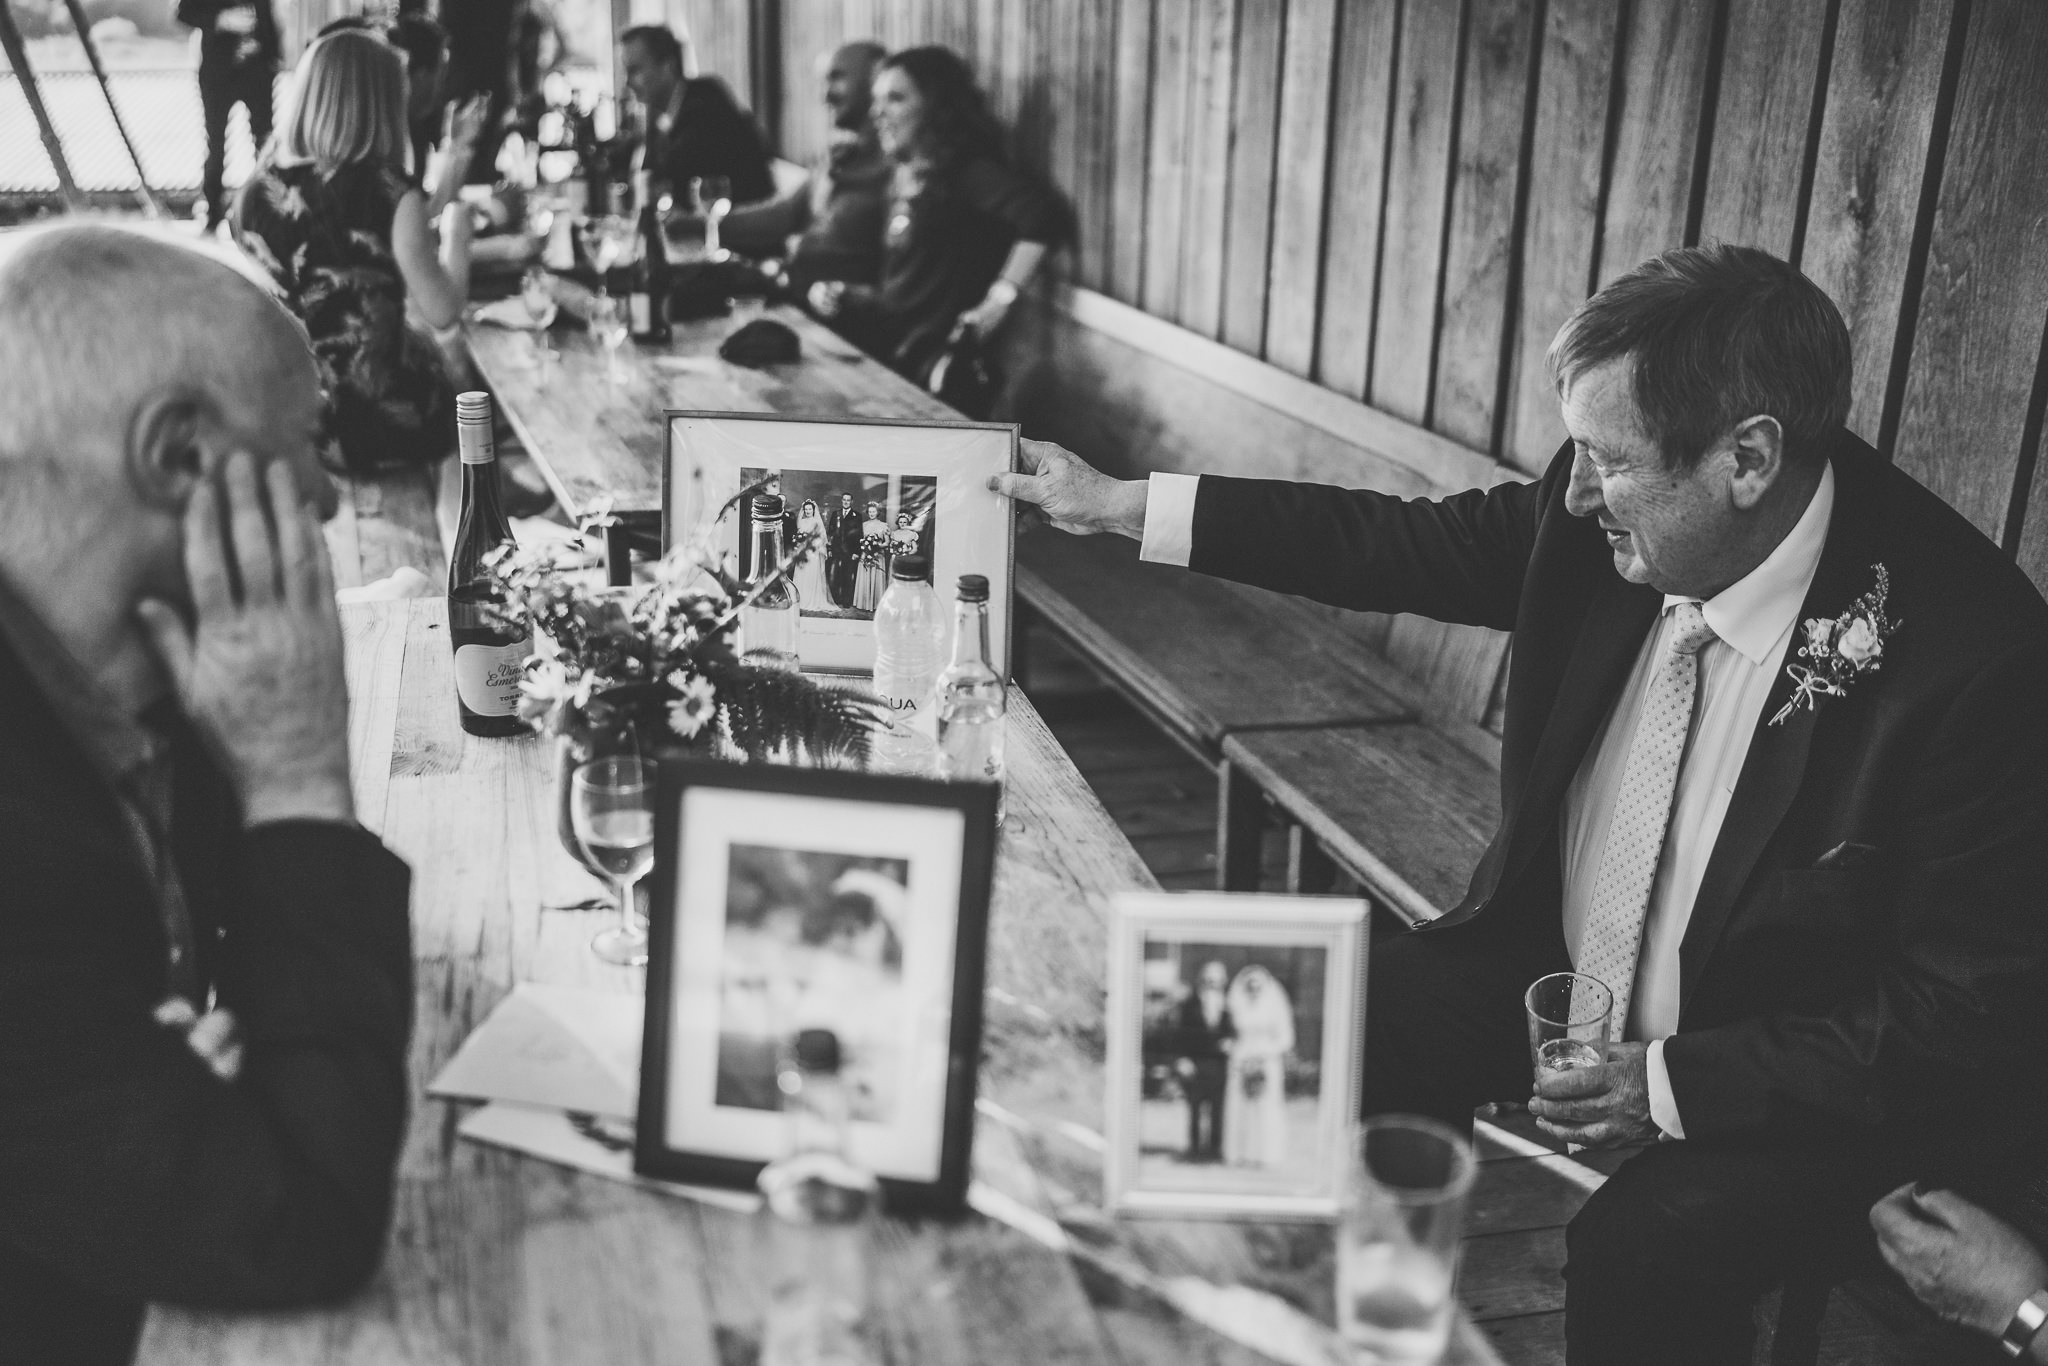 paul-marbrook-Fforest-Wedding-Photographer-90075